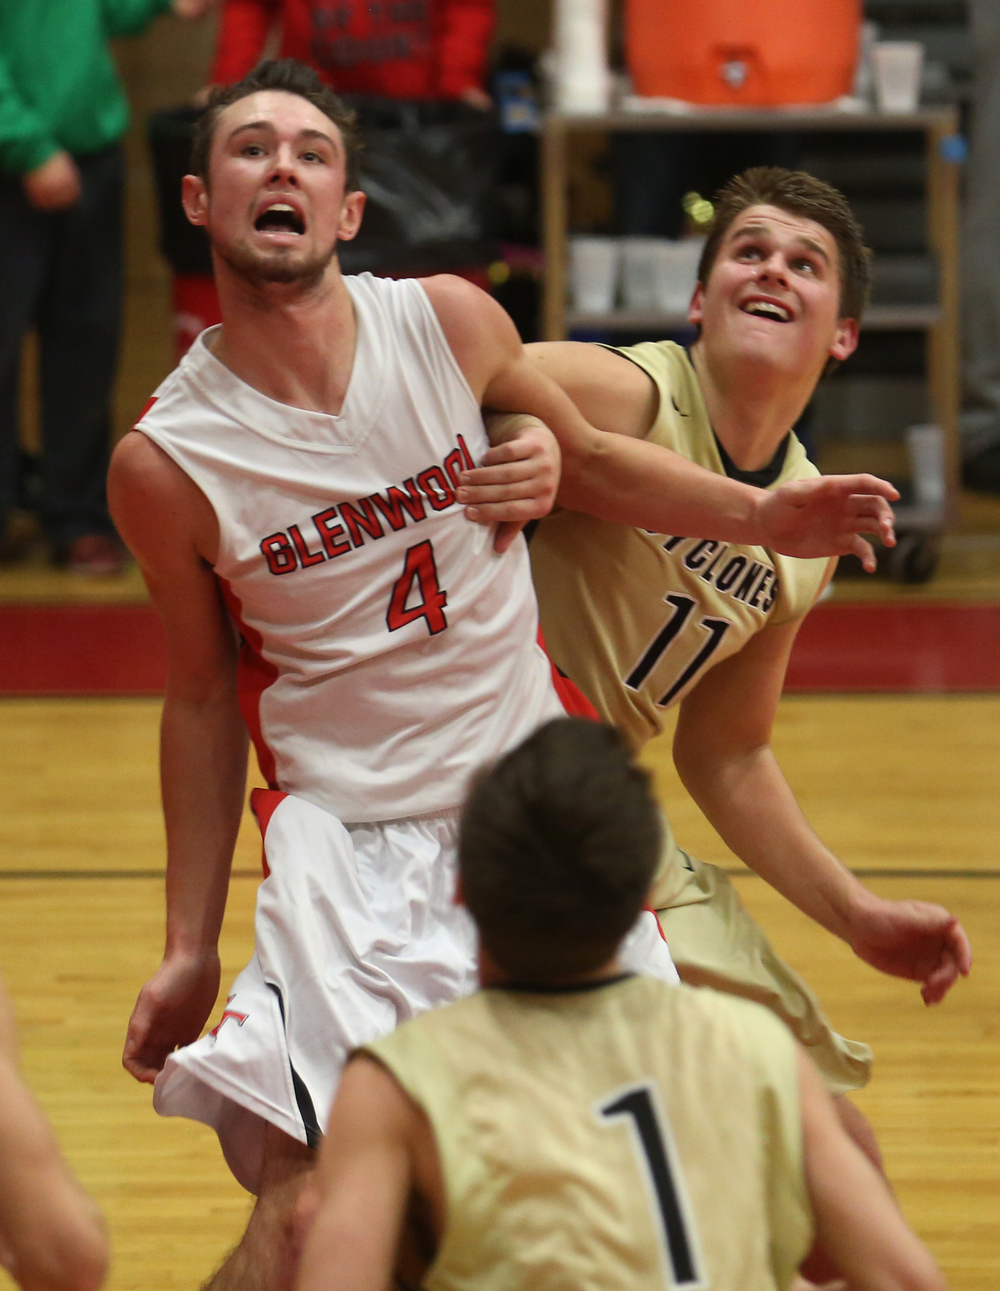 Cyclones player Max Bloink and Glenwood's Sam Anderson exchange elbows while looking for a rebound. Chatham Glenwood defeated Sacred Heart Griffin 54-40 in boys basketball action at Glenwood High School on Friday evening, Dec. 12, 2014.David Spencer/The State Journal-Register